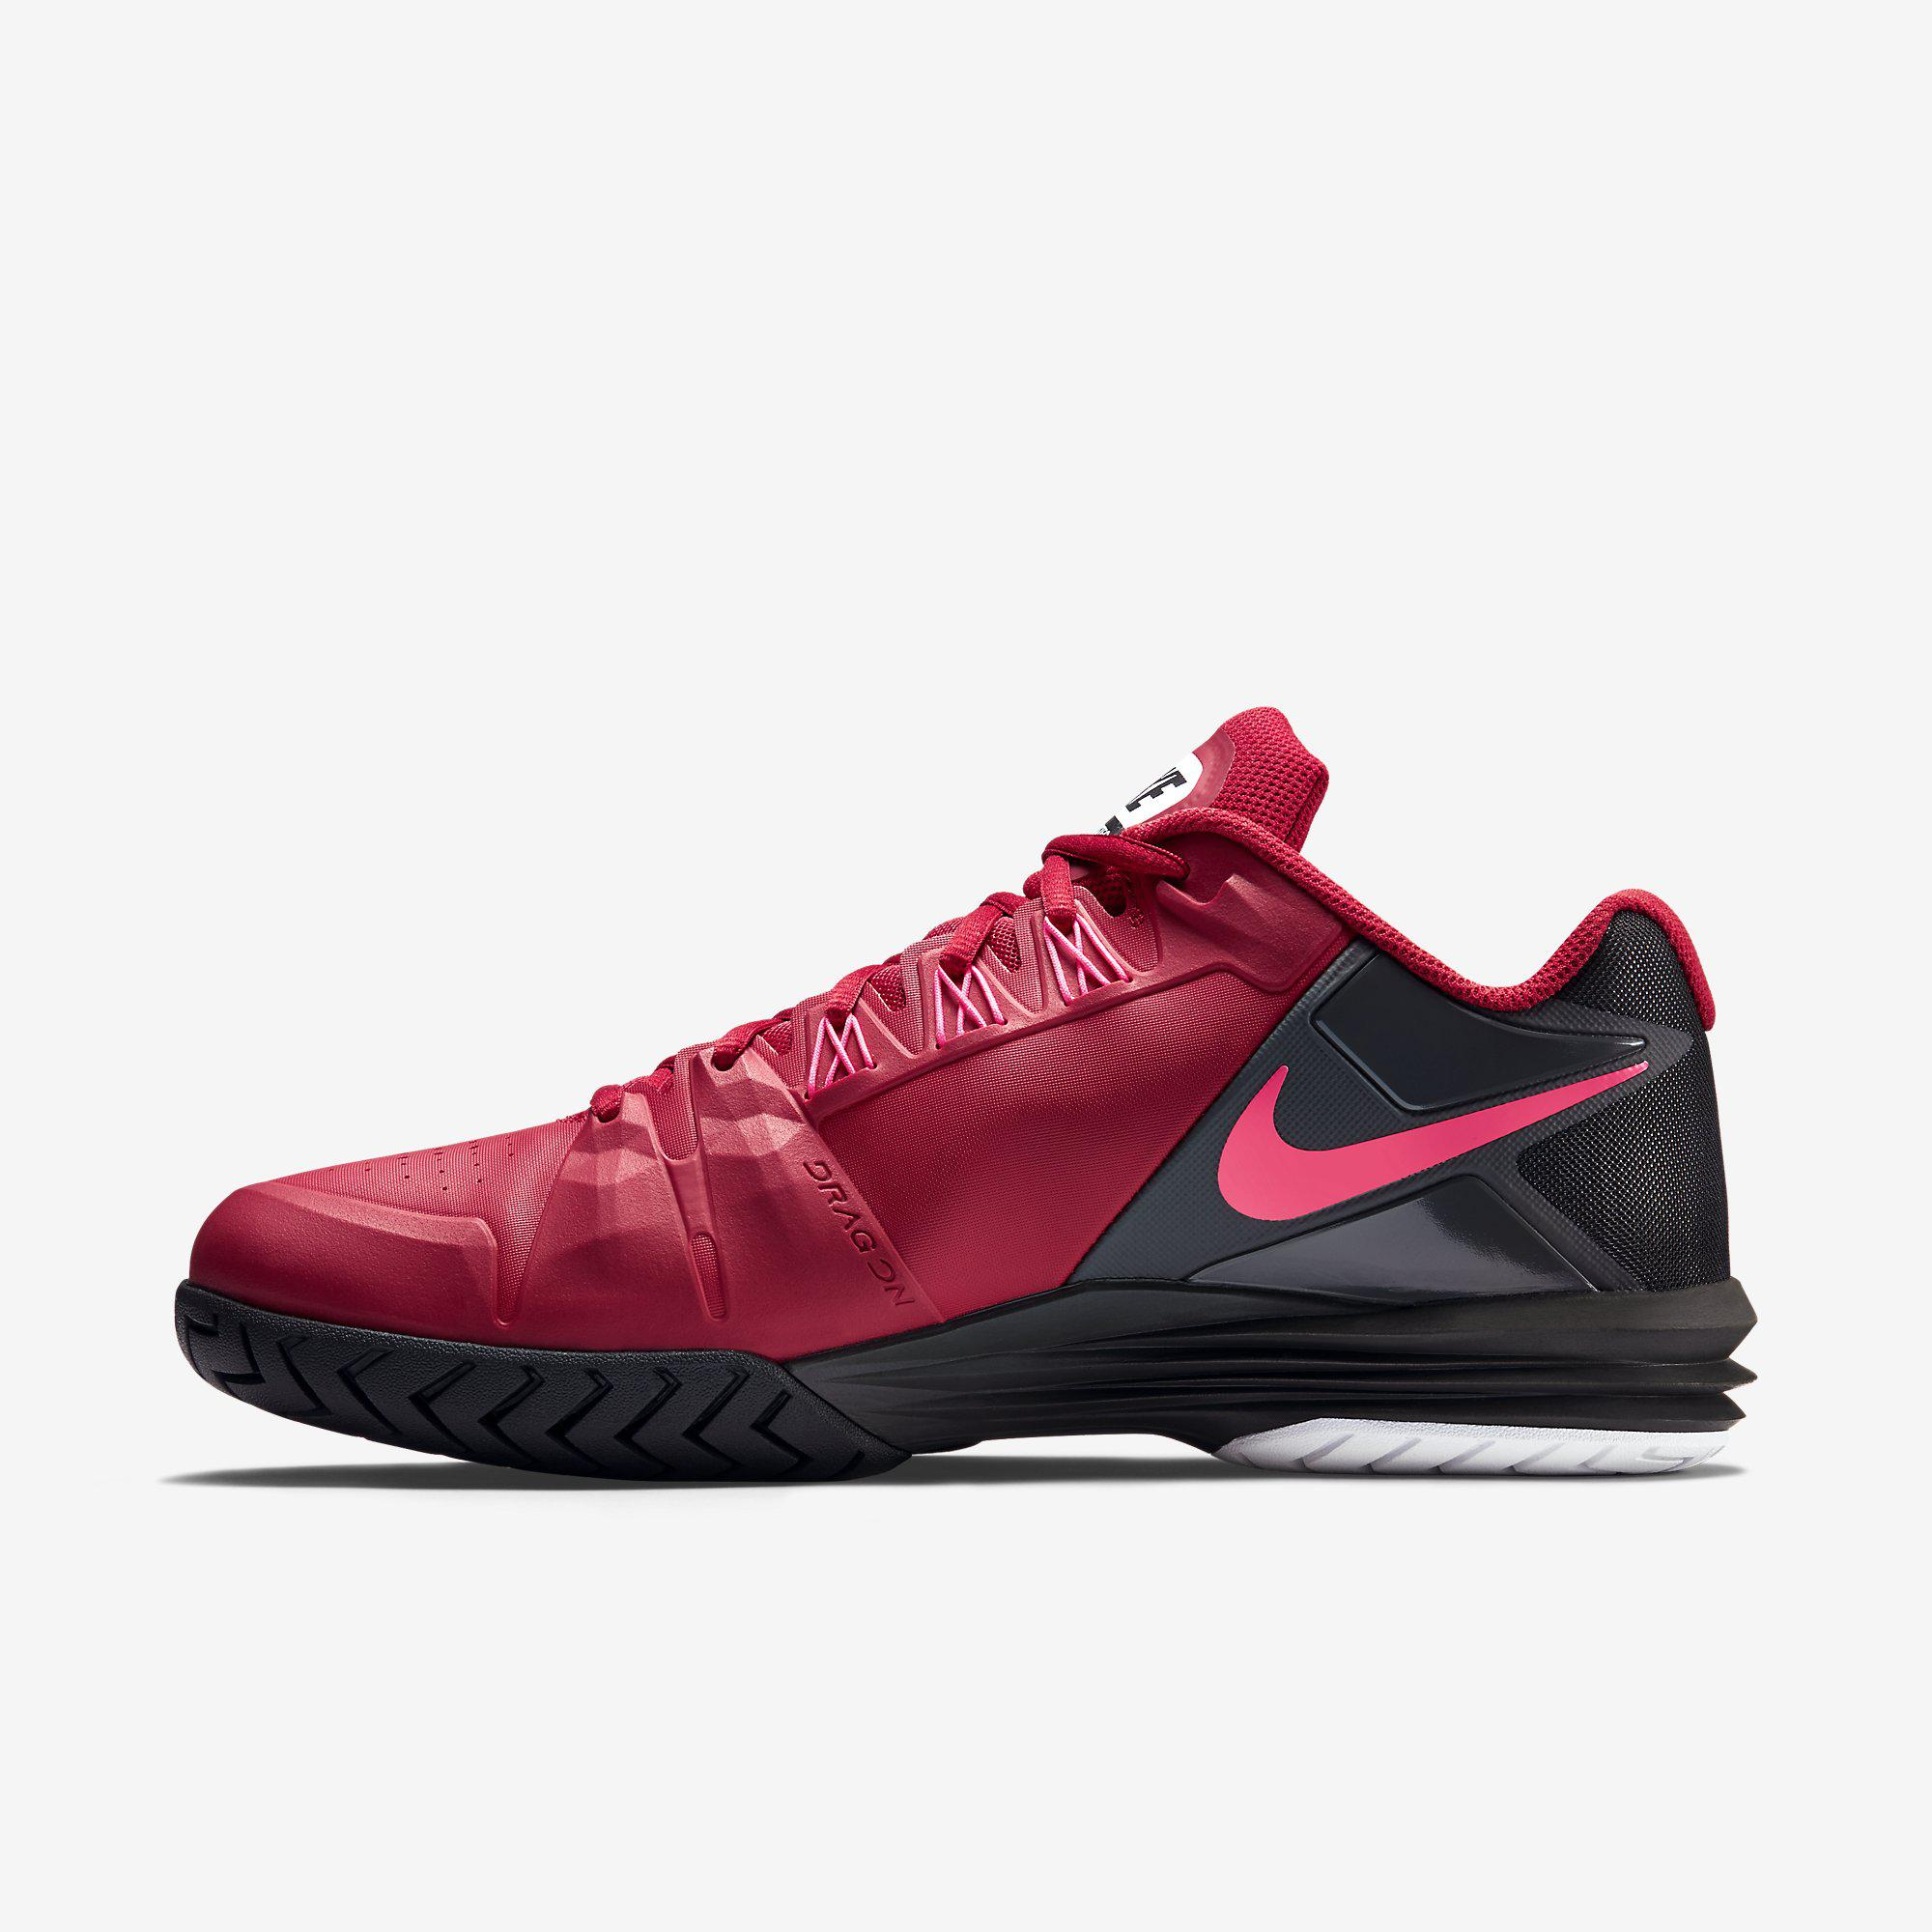 Out Of Stock. Nike Mens Lunar Ballistec Tennis Shoes - Gym Red/Black · Nike  Mens ...